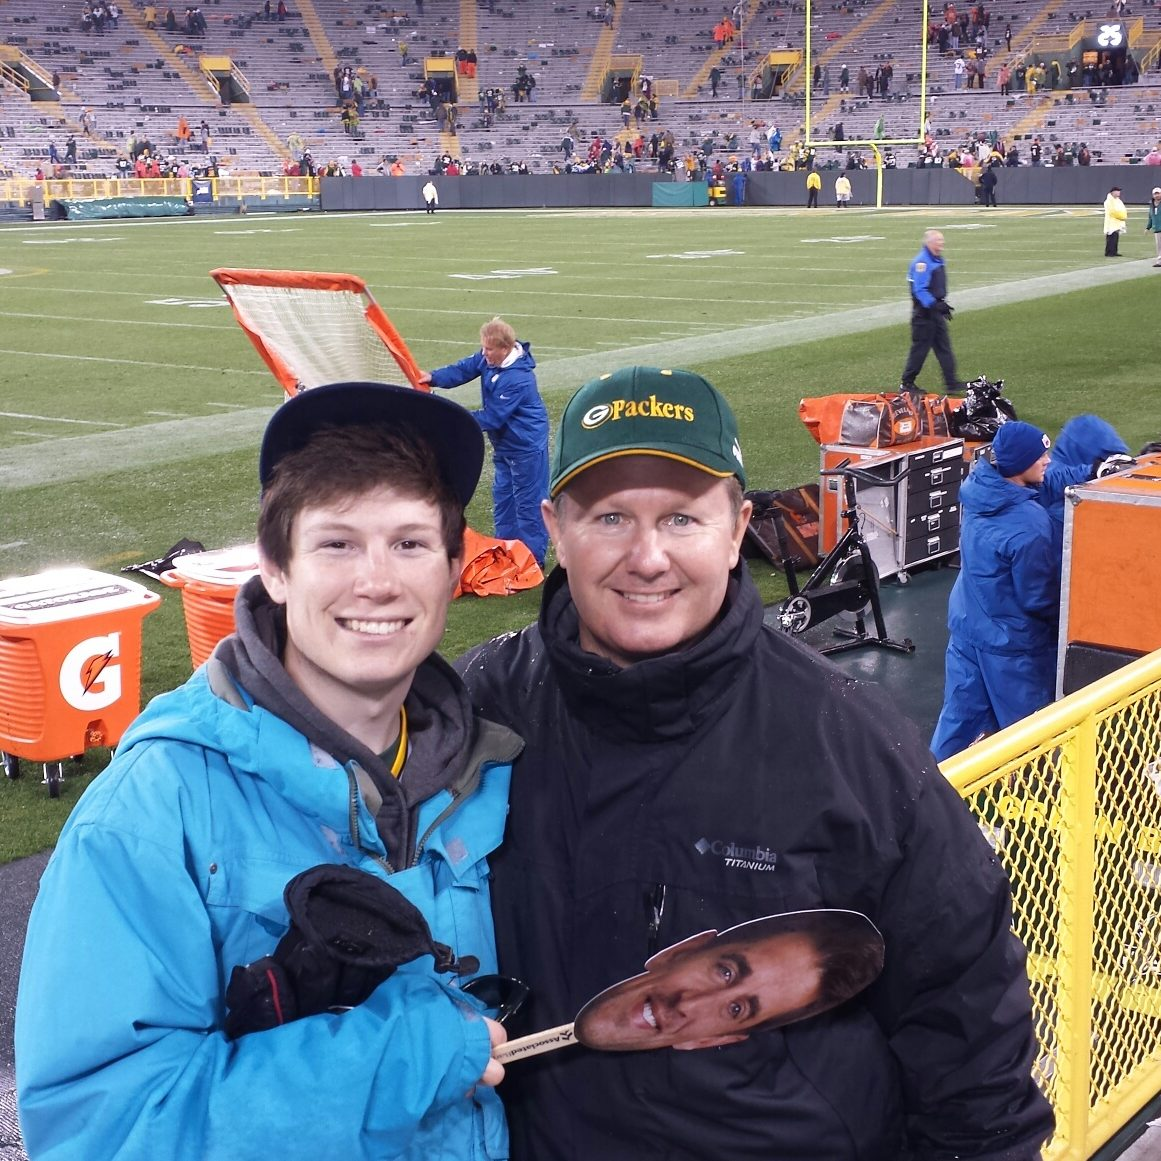 Jeff and his son, Tony, at a Green Bay Packers game